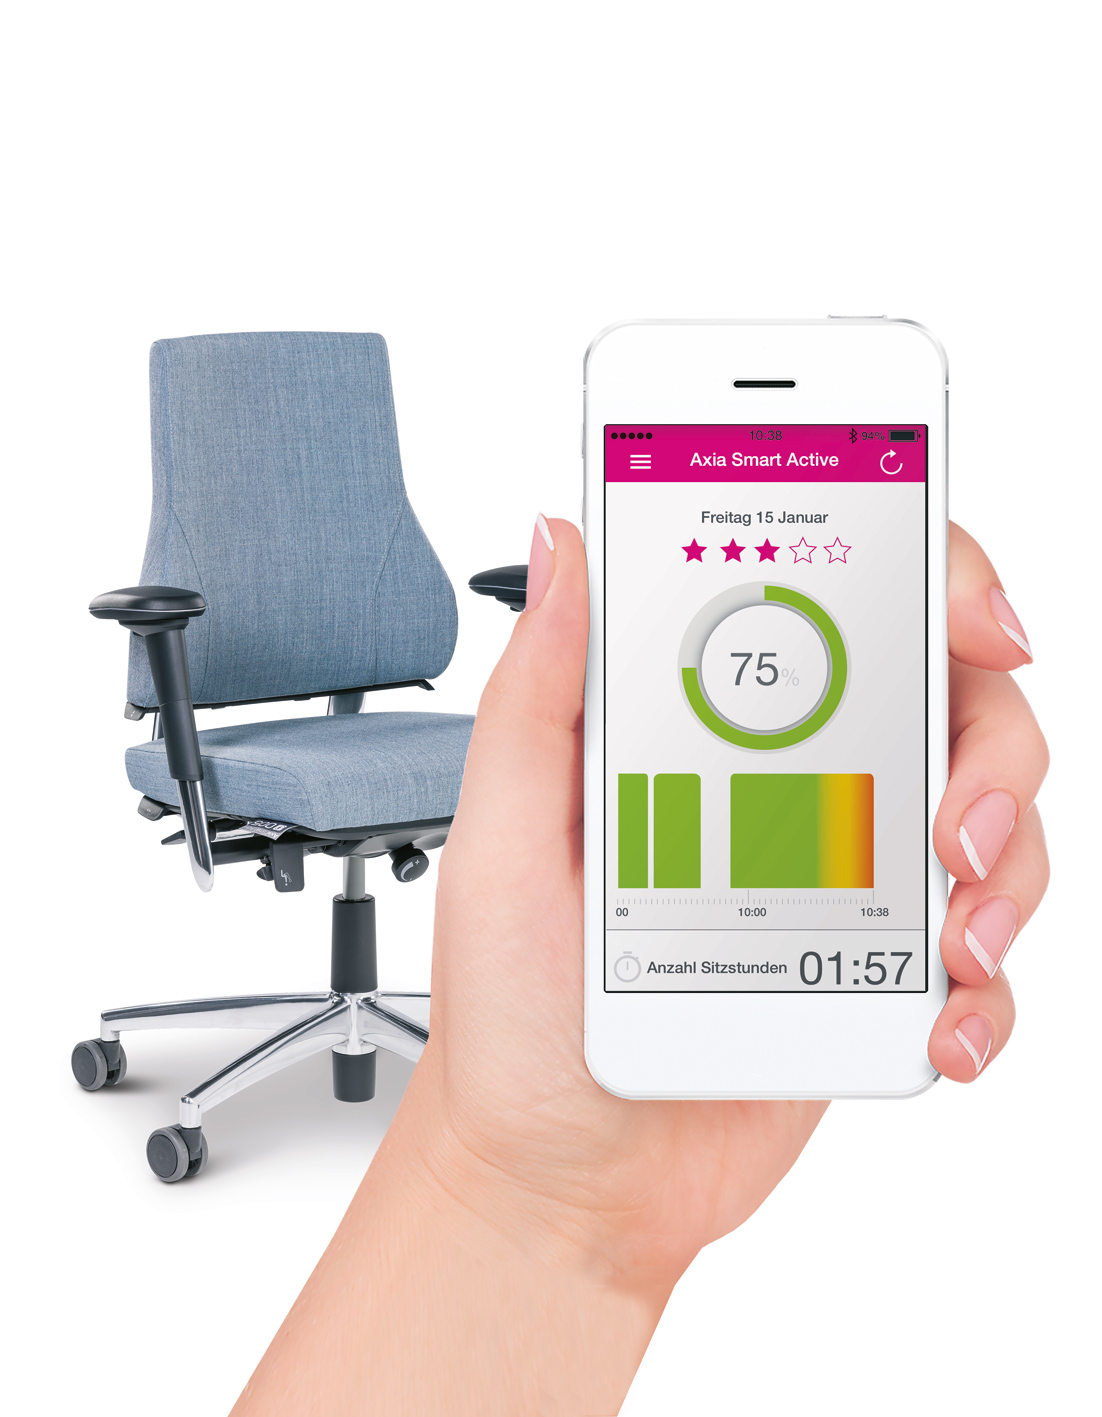 Sbseating_bma-axia-smart-active-app